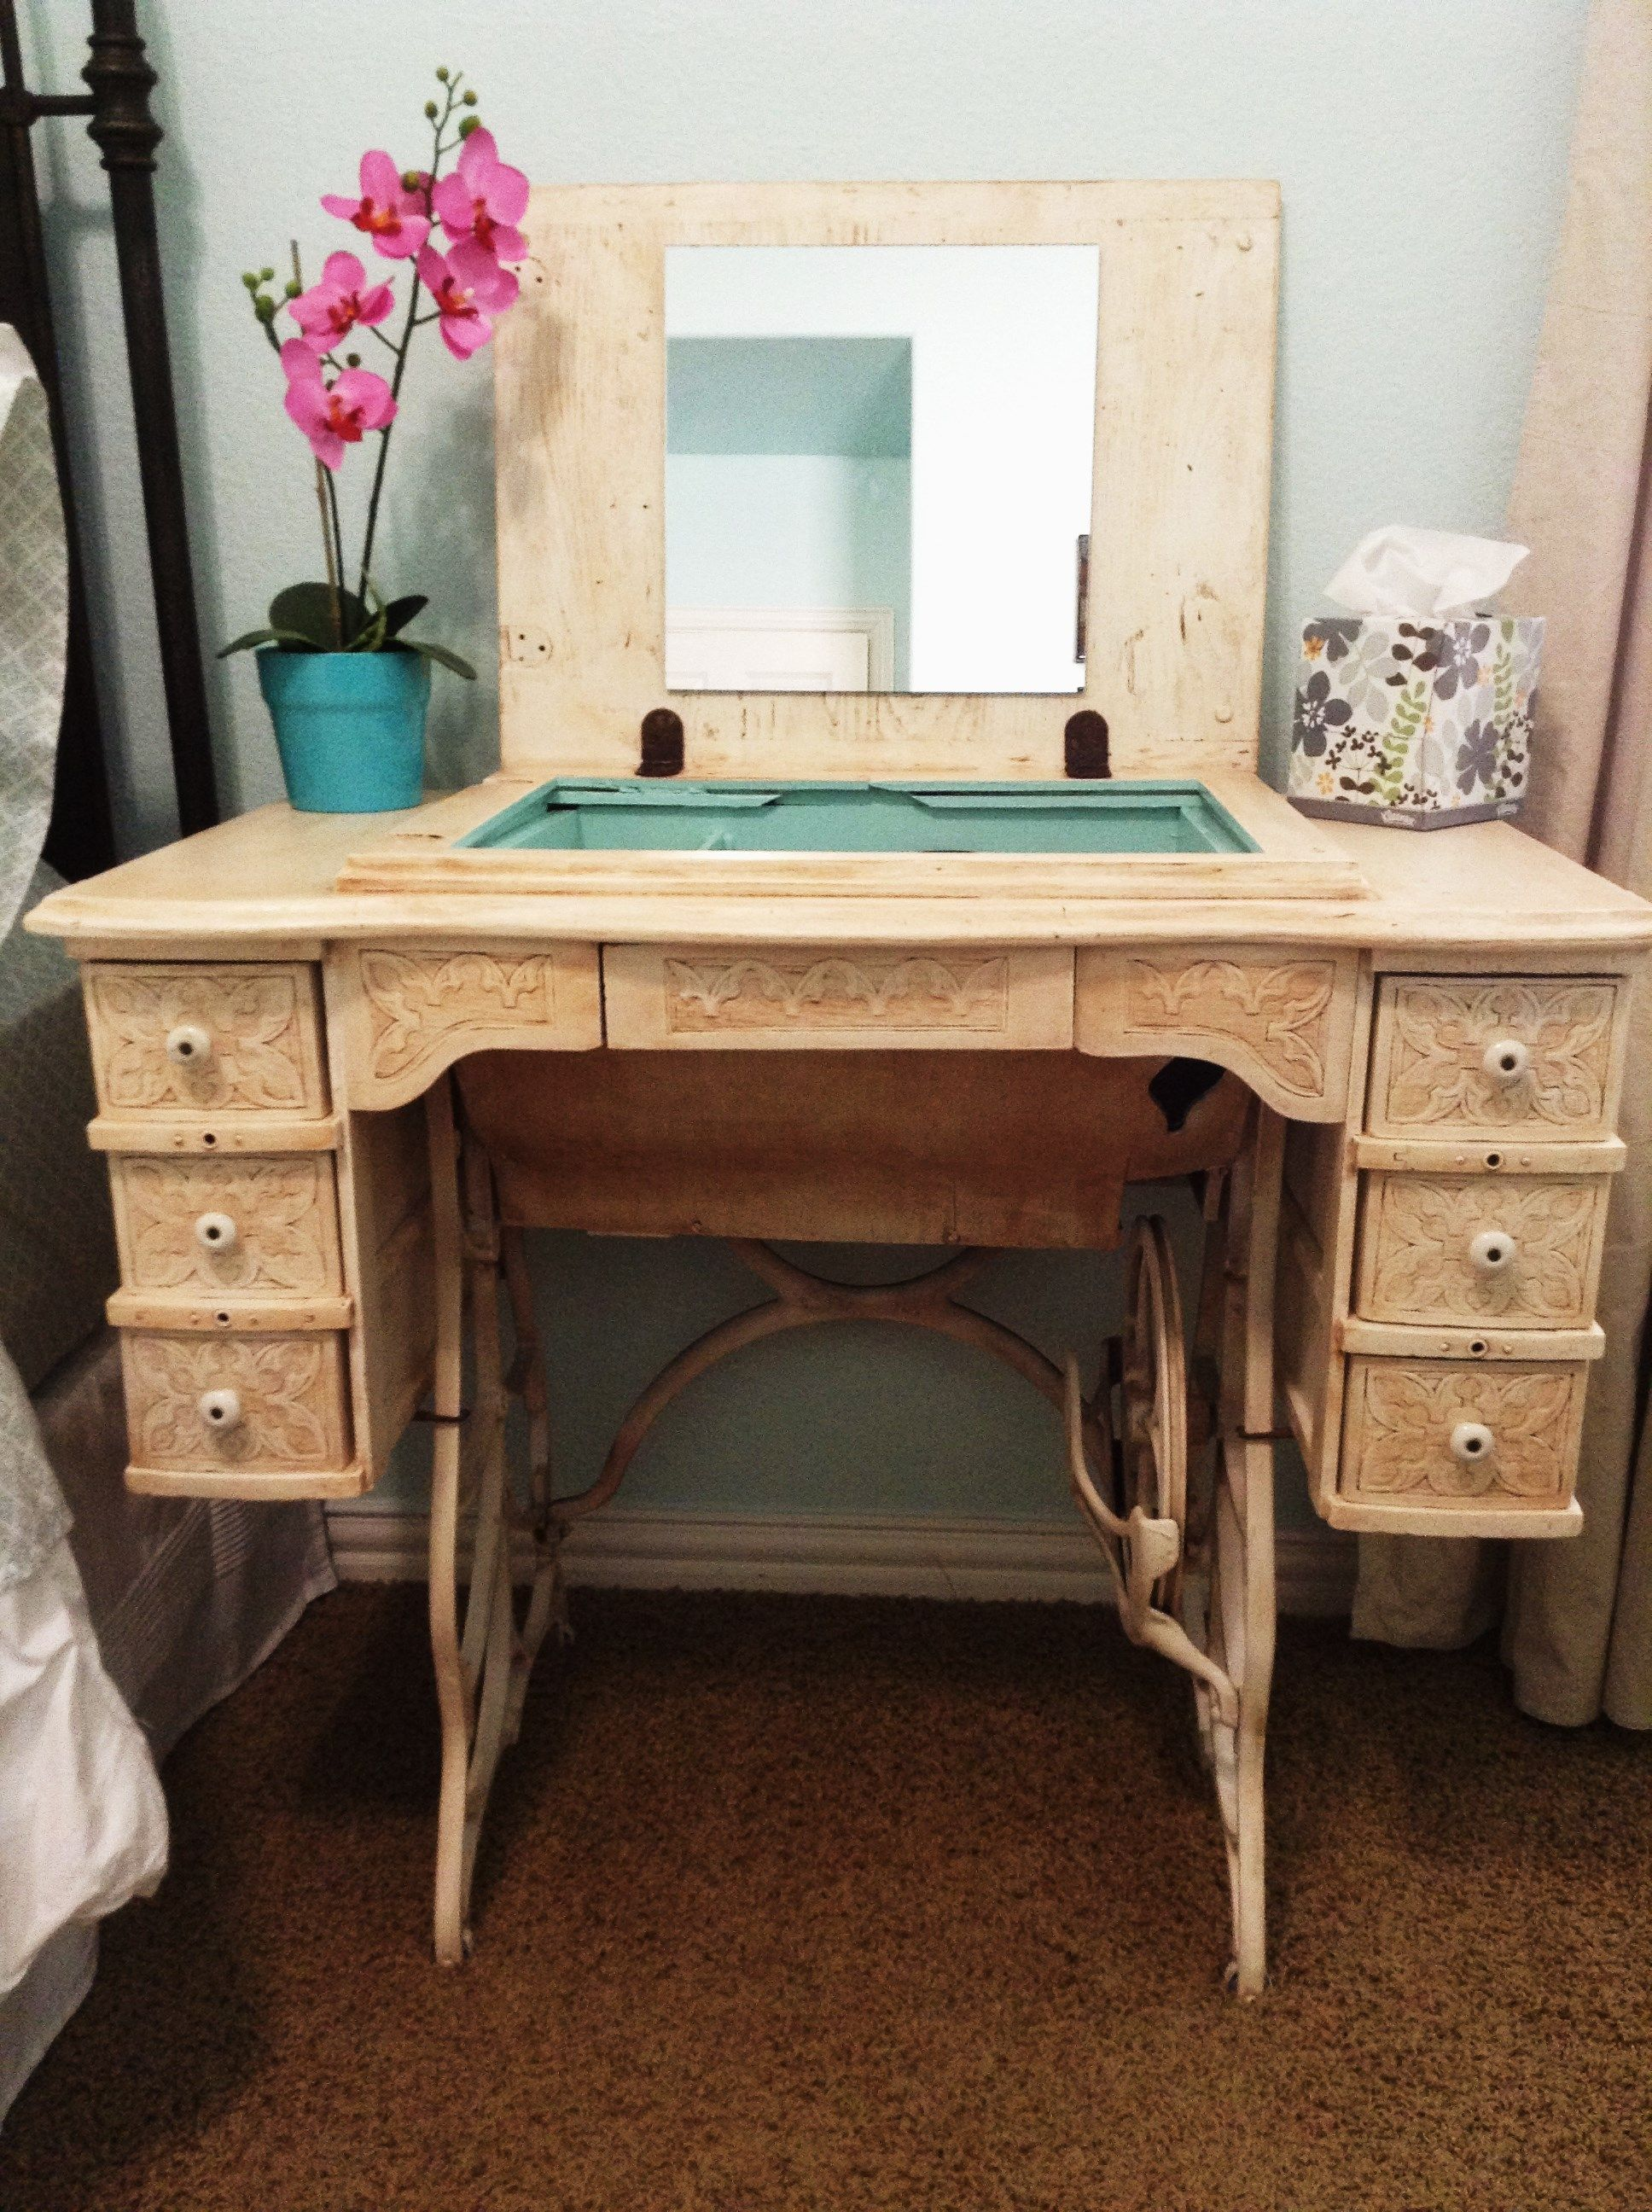 Singer Sewing Machine Repurposed Upcycled Furniture